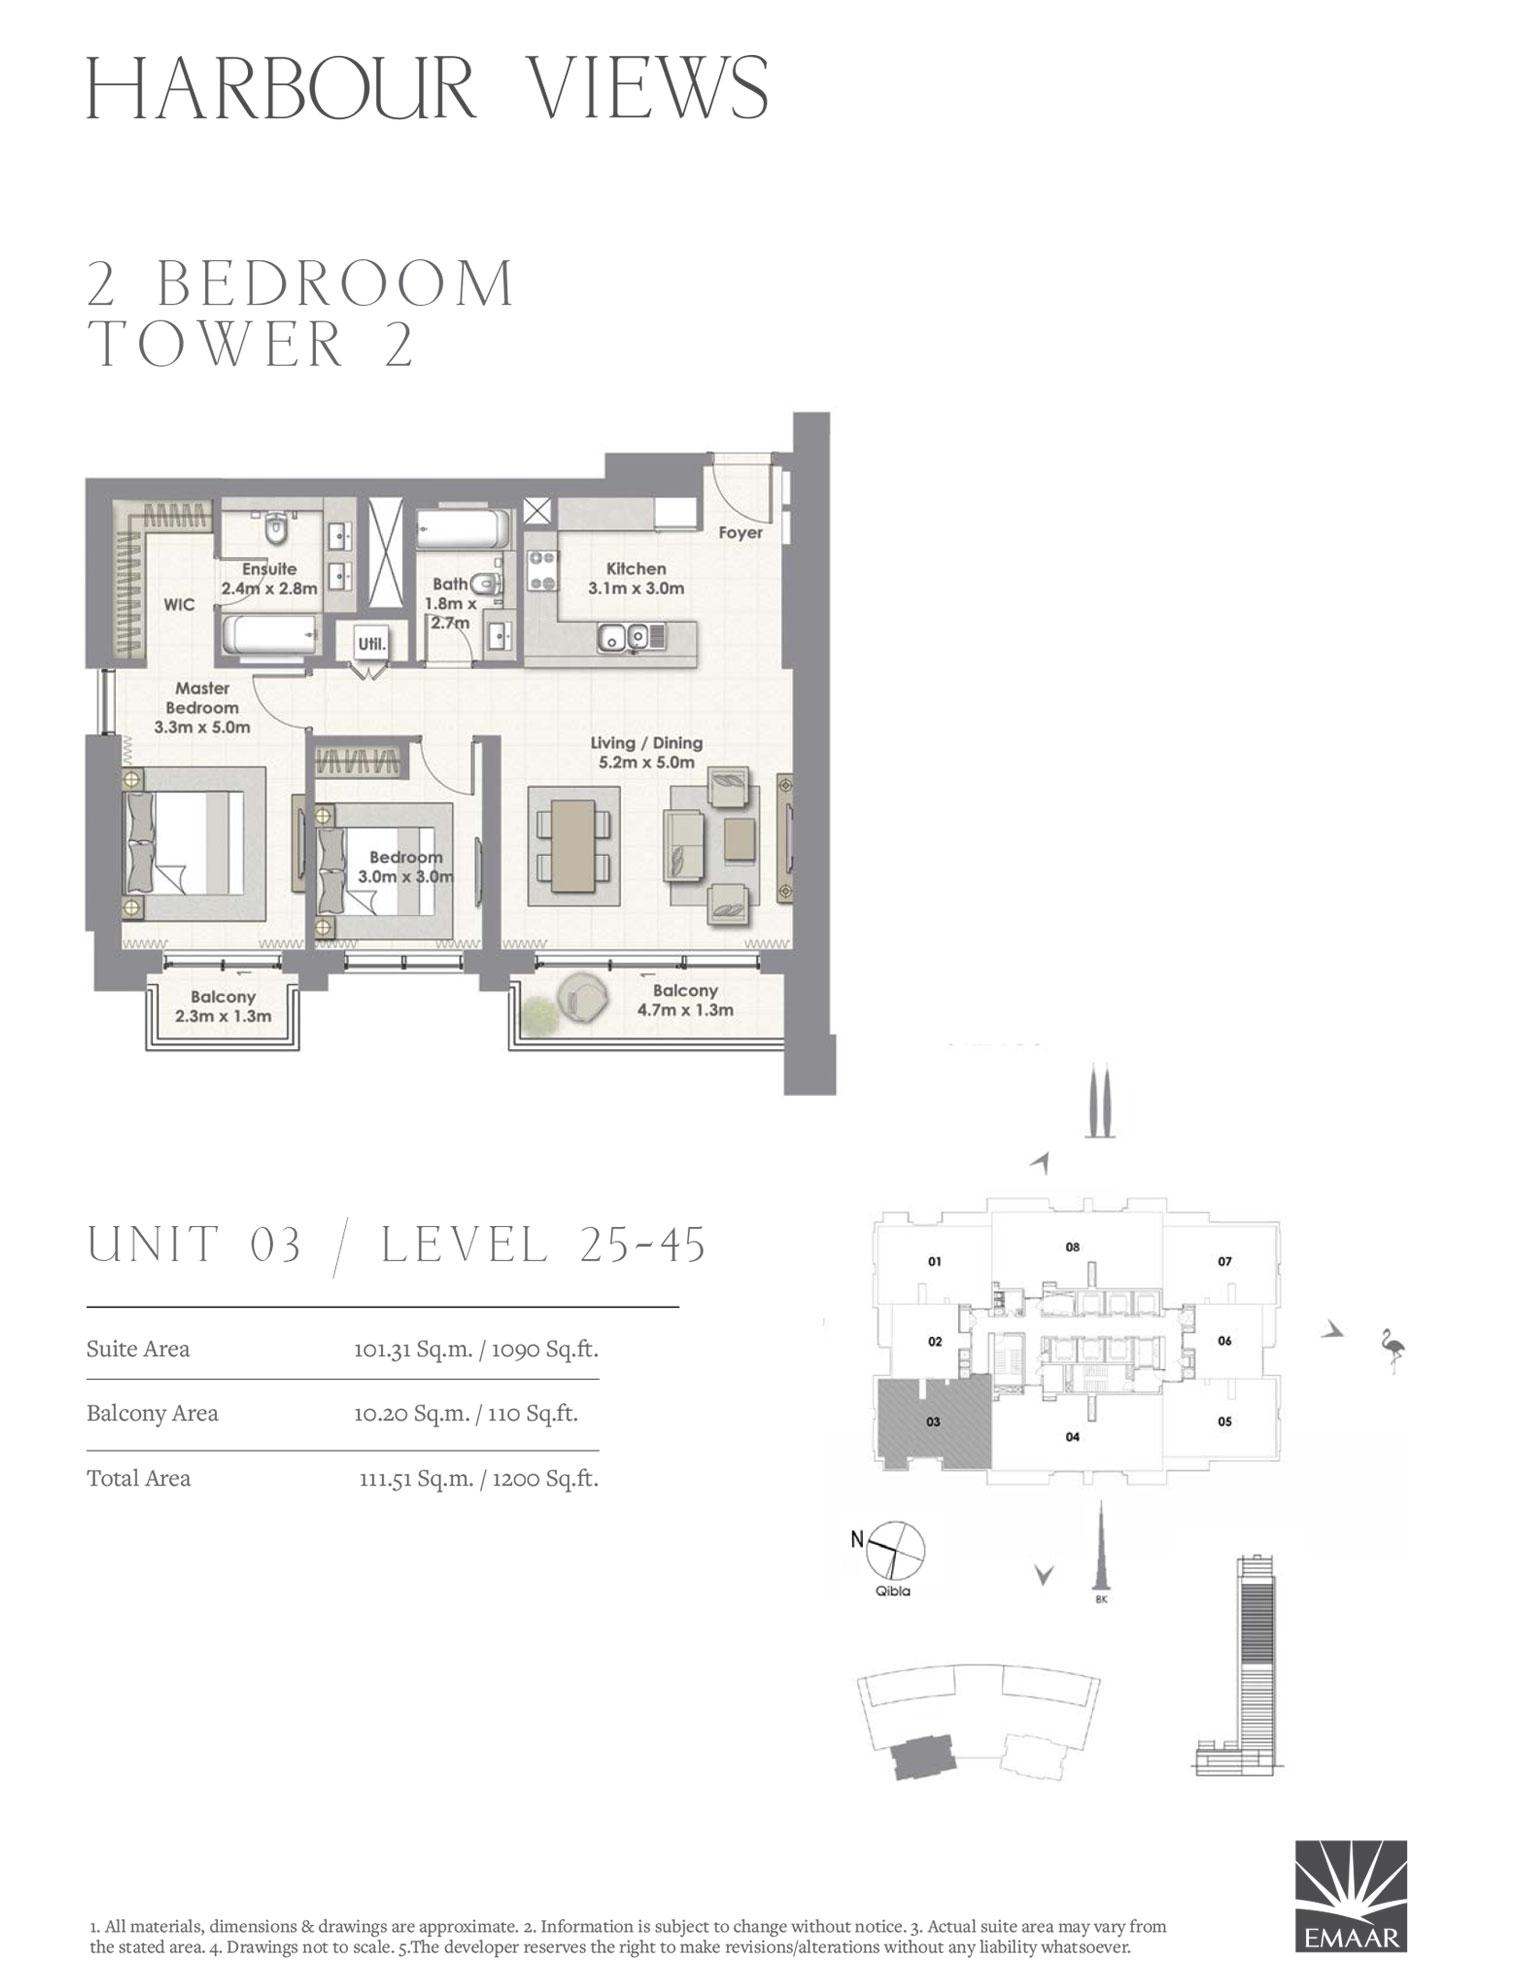 2 Bedroom Tower 2, Unit 03/Level 25-45